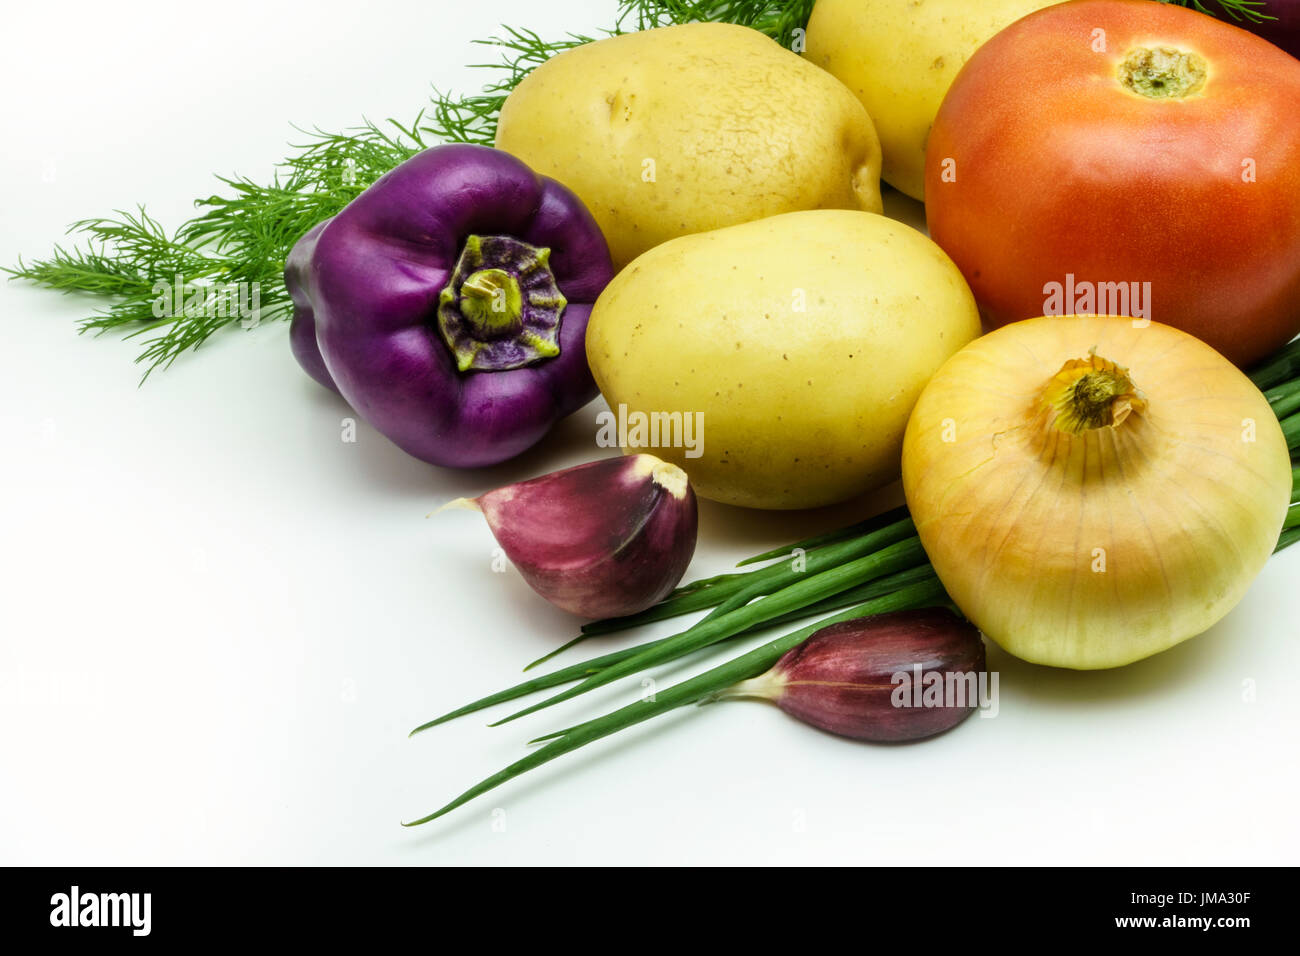 Assortment of fresh raw vegetables isolated on white background. Selection includes potato, tomato, green onion, Stock Photo